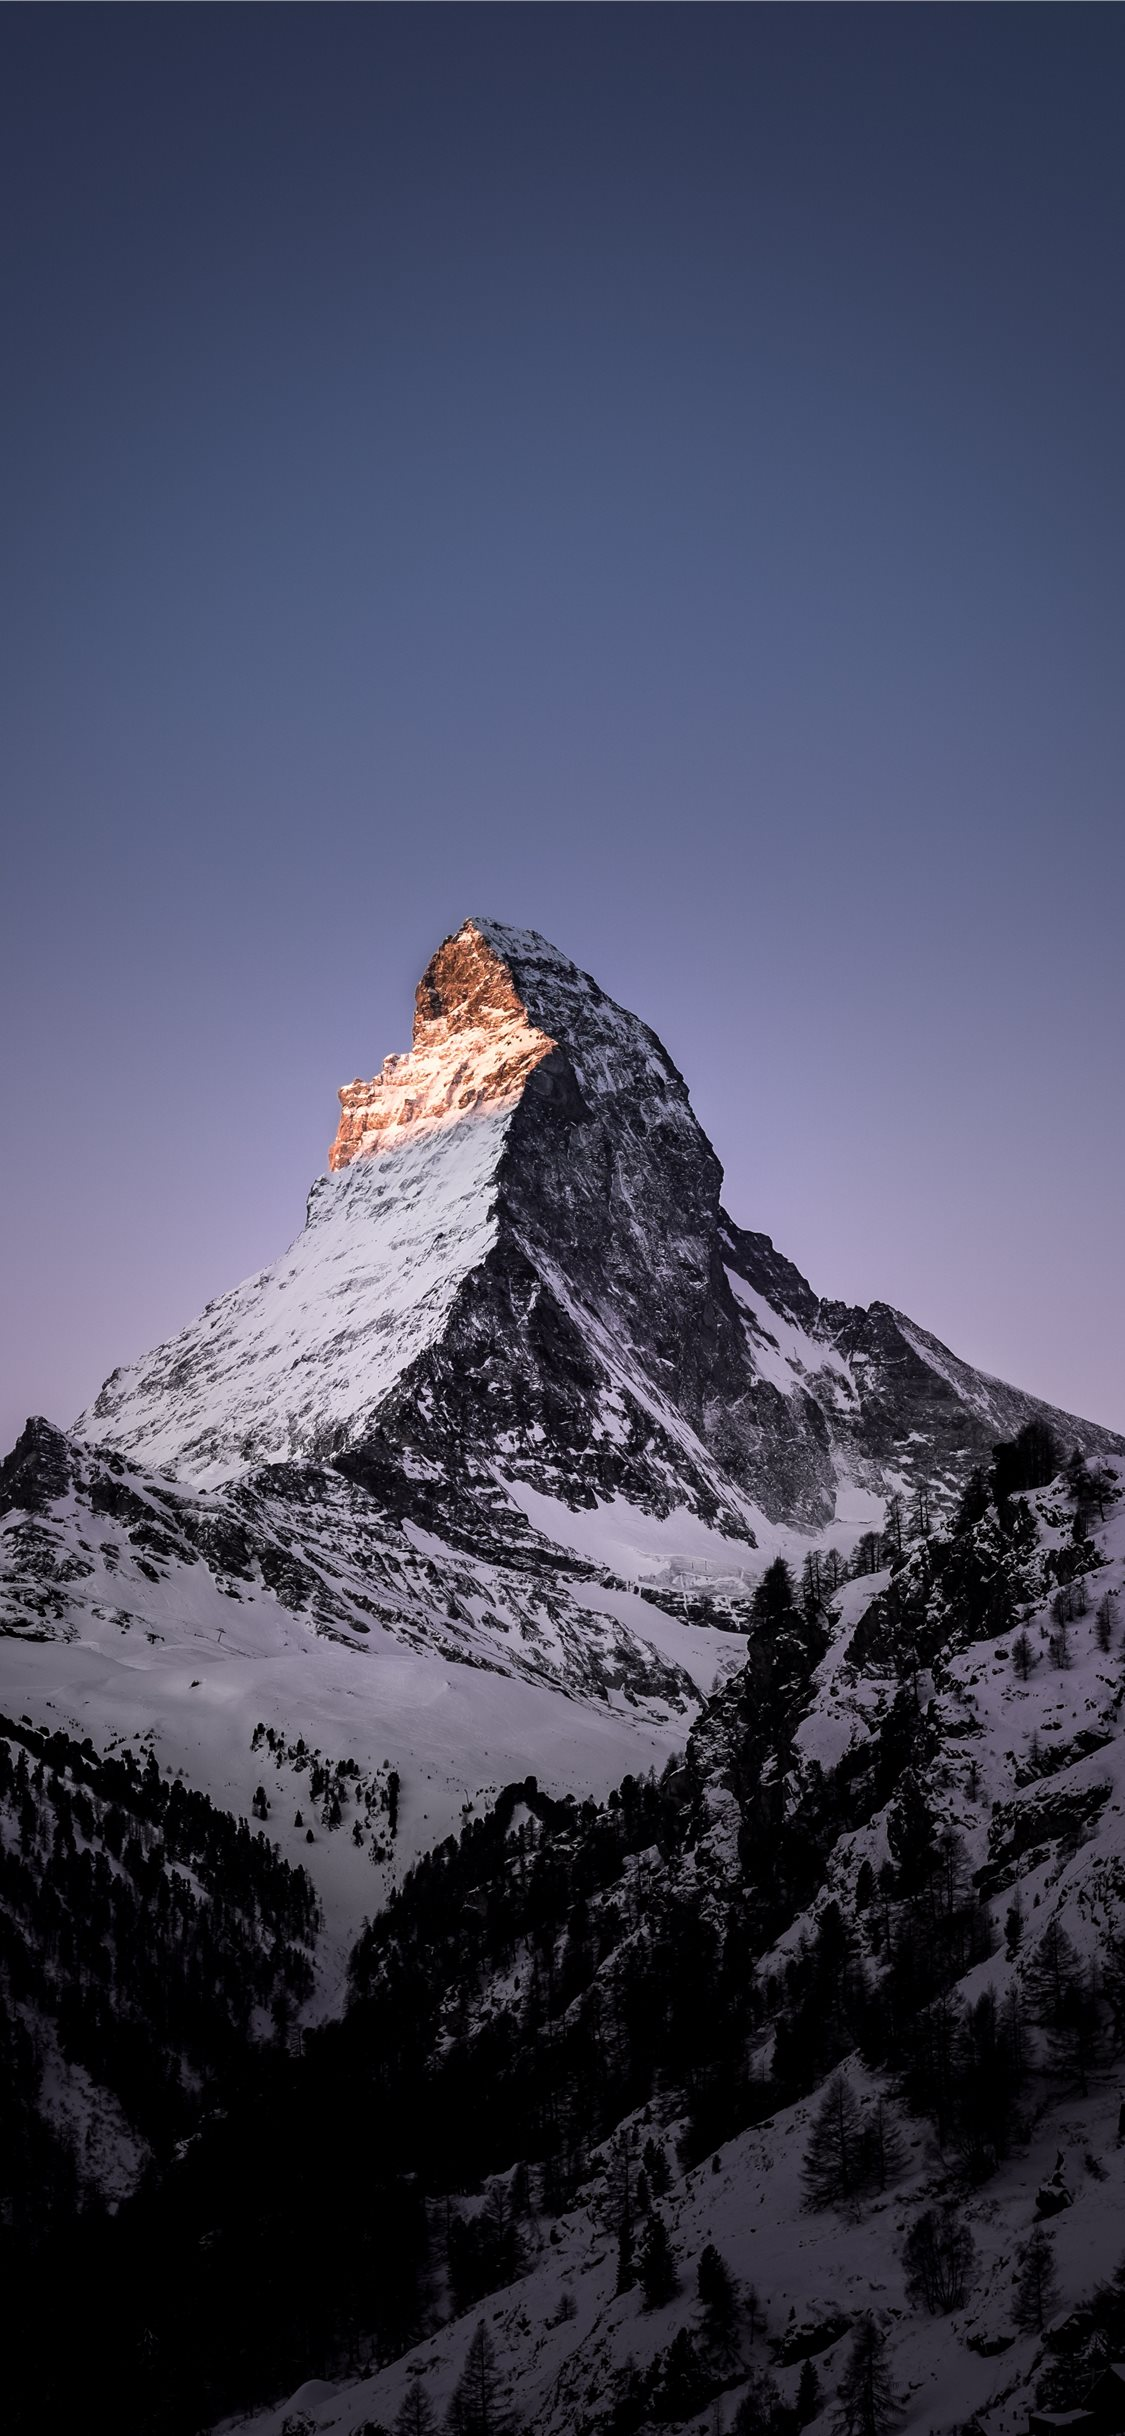 Matterhorn Zermatt Switzerland Iphone X Wallpapers Free Download